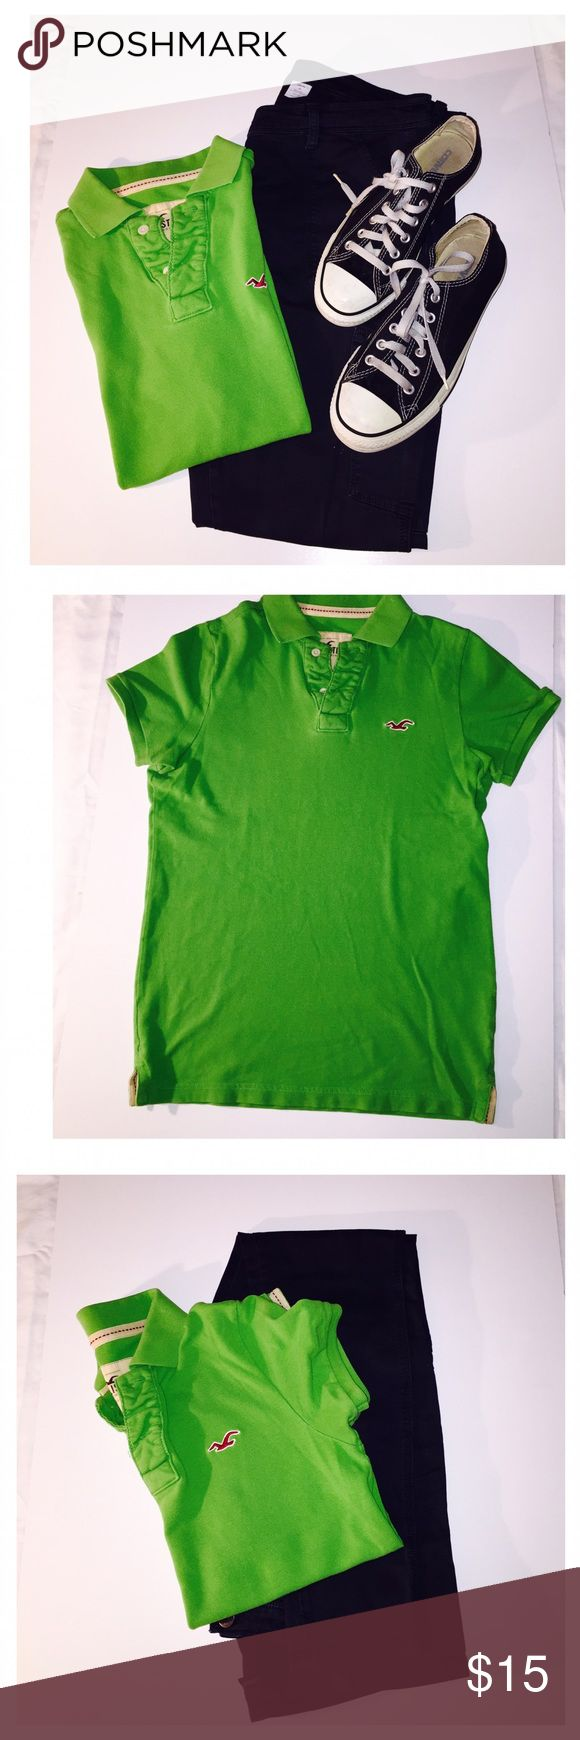 Hollister light green polo shirt Hollister light green polo shirt Hollister Tops Blouses